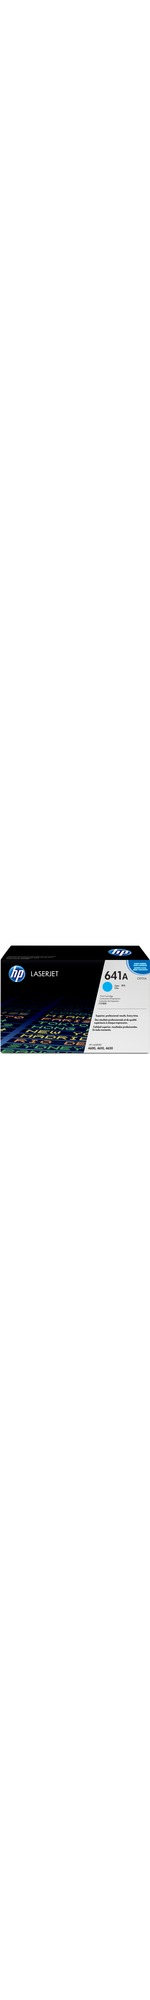 HP 641A Toner Cartridge - Cyan - Laser - 8000 Page - 1 Each